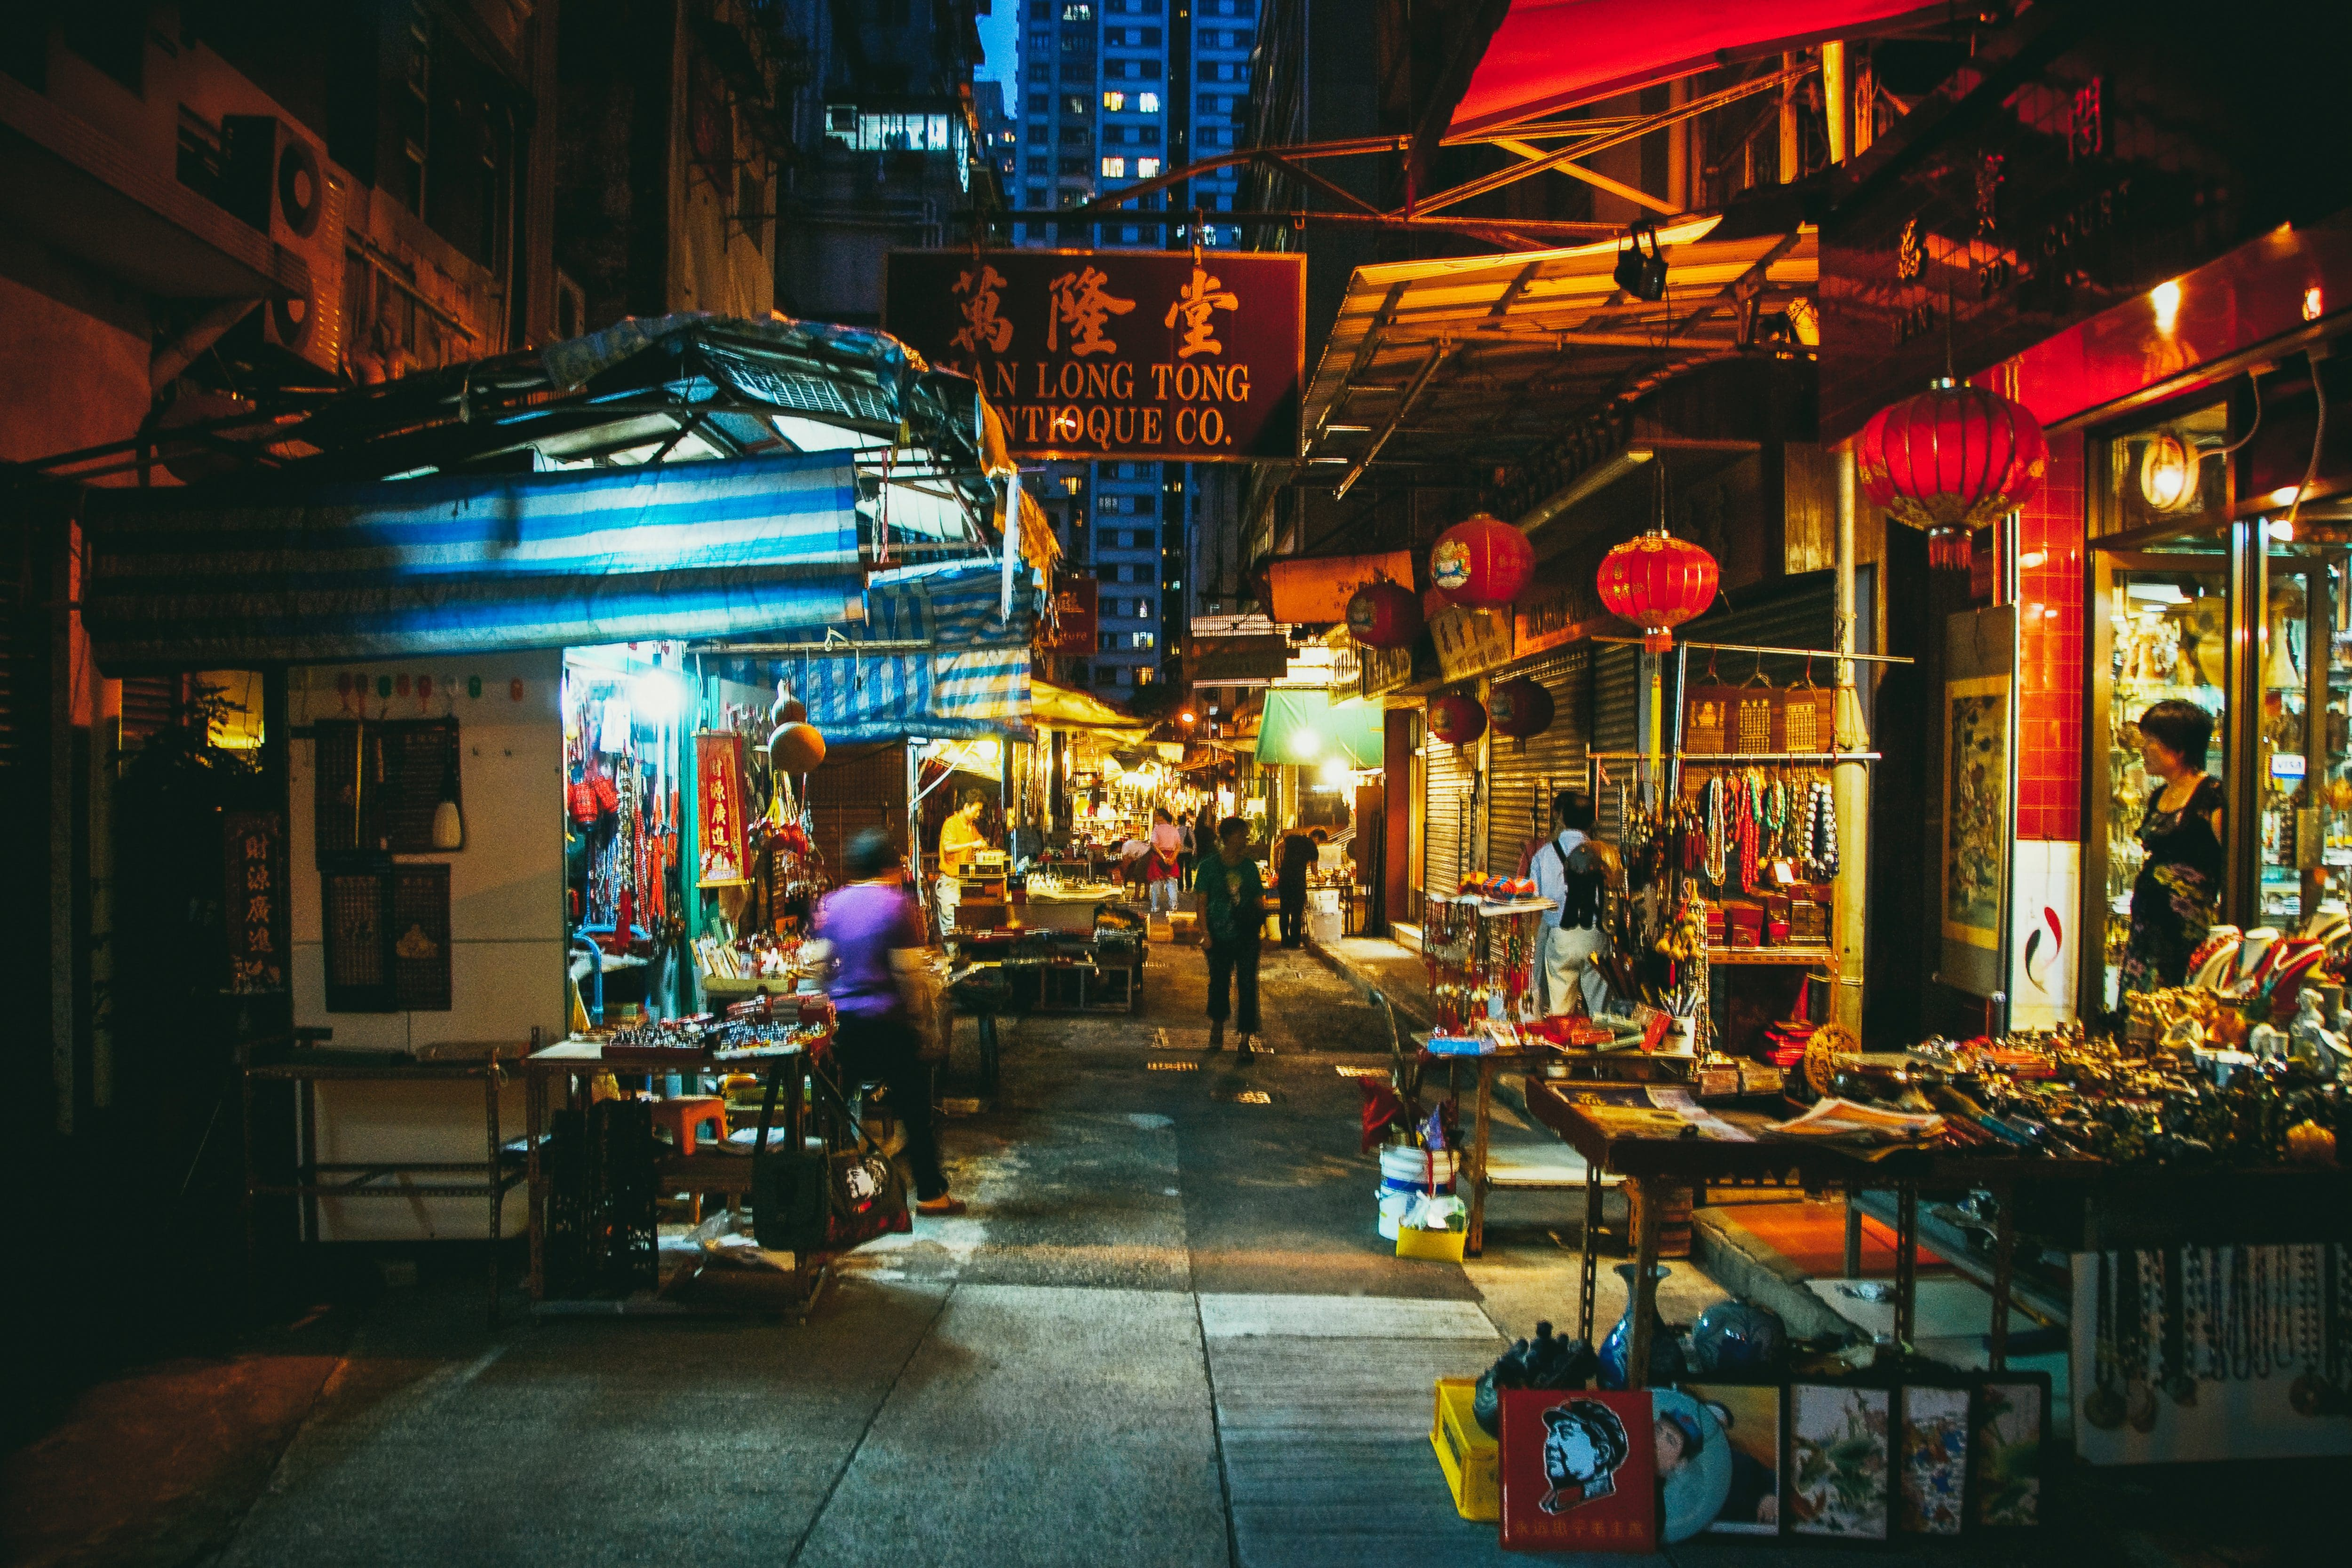 Busy vendors sell their wares from their shop front which overflow into the narrow streets of Sheung Wan